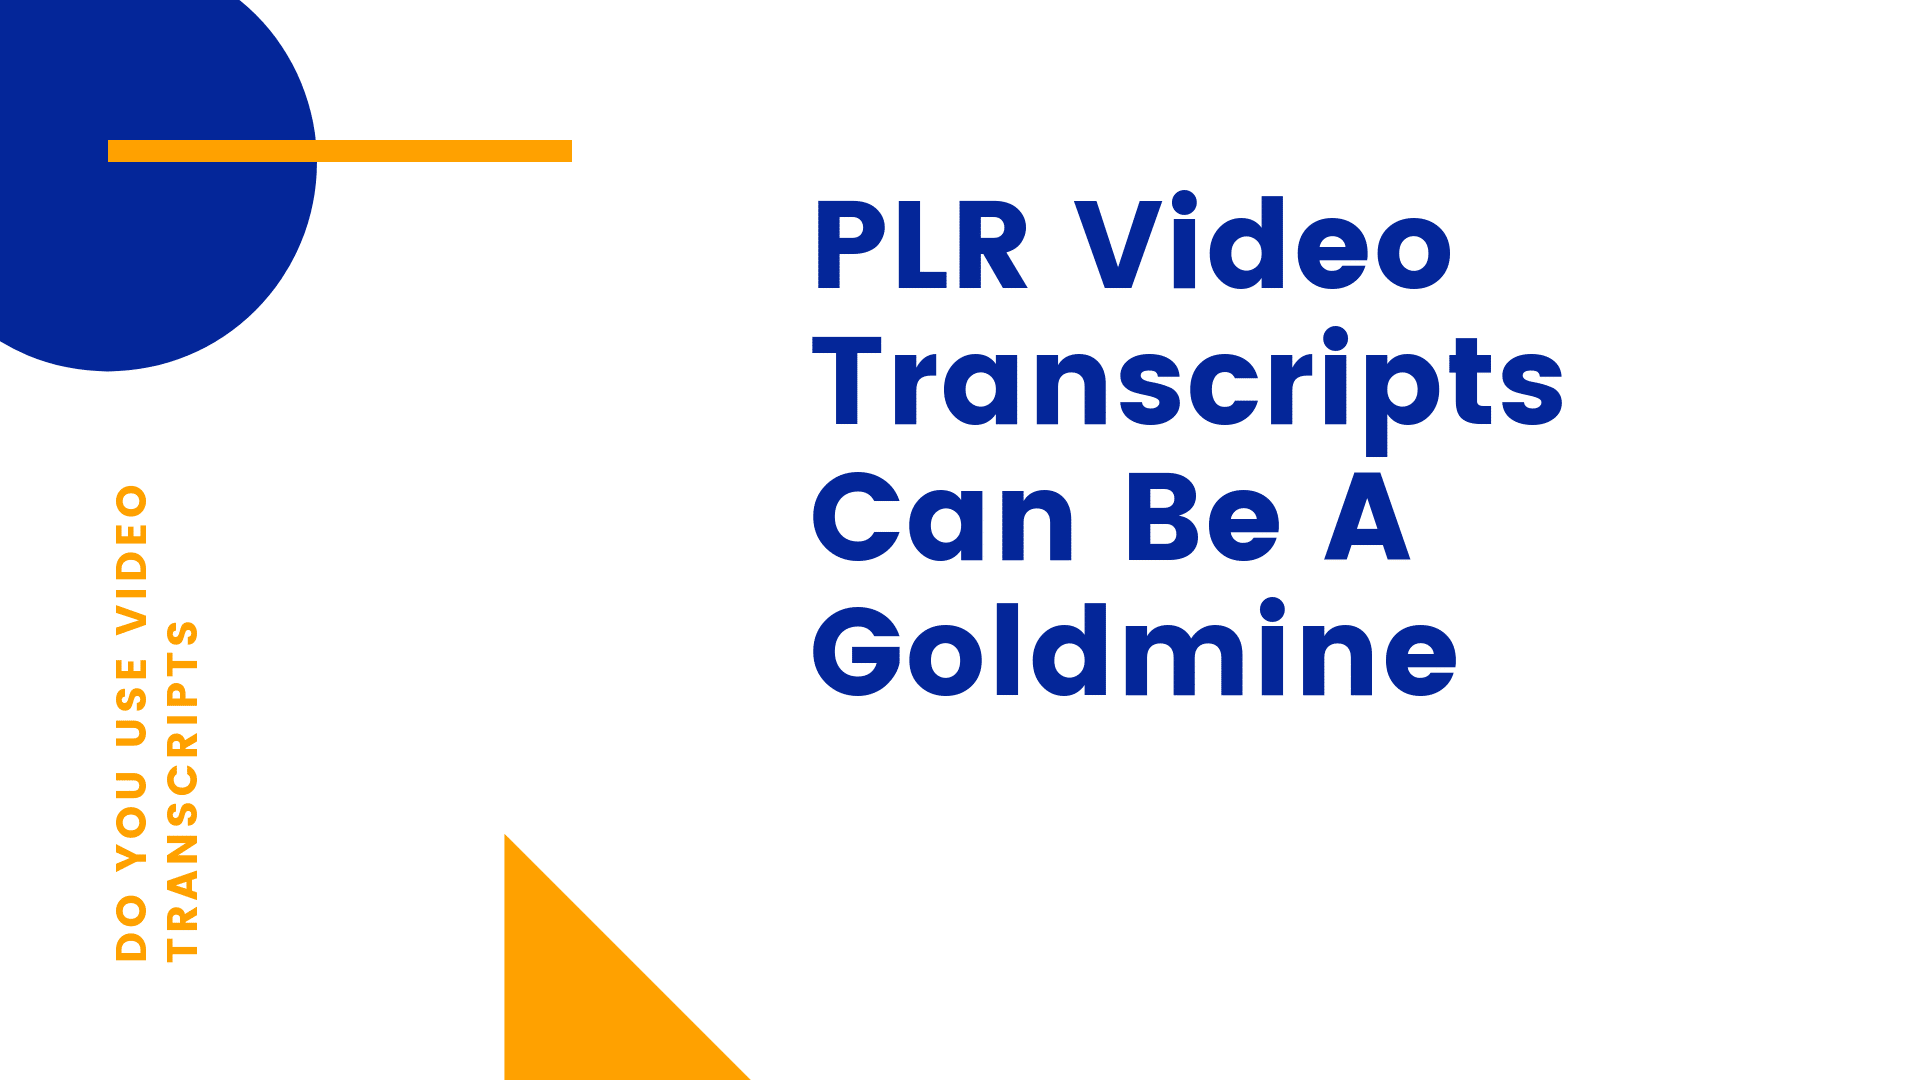 PLR Video Transcripts Can Be A Goldmine